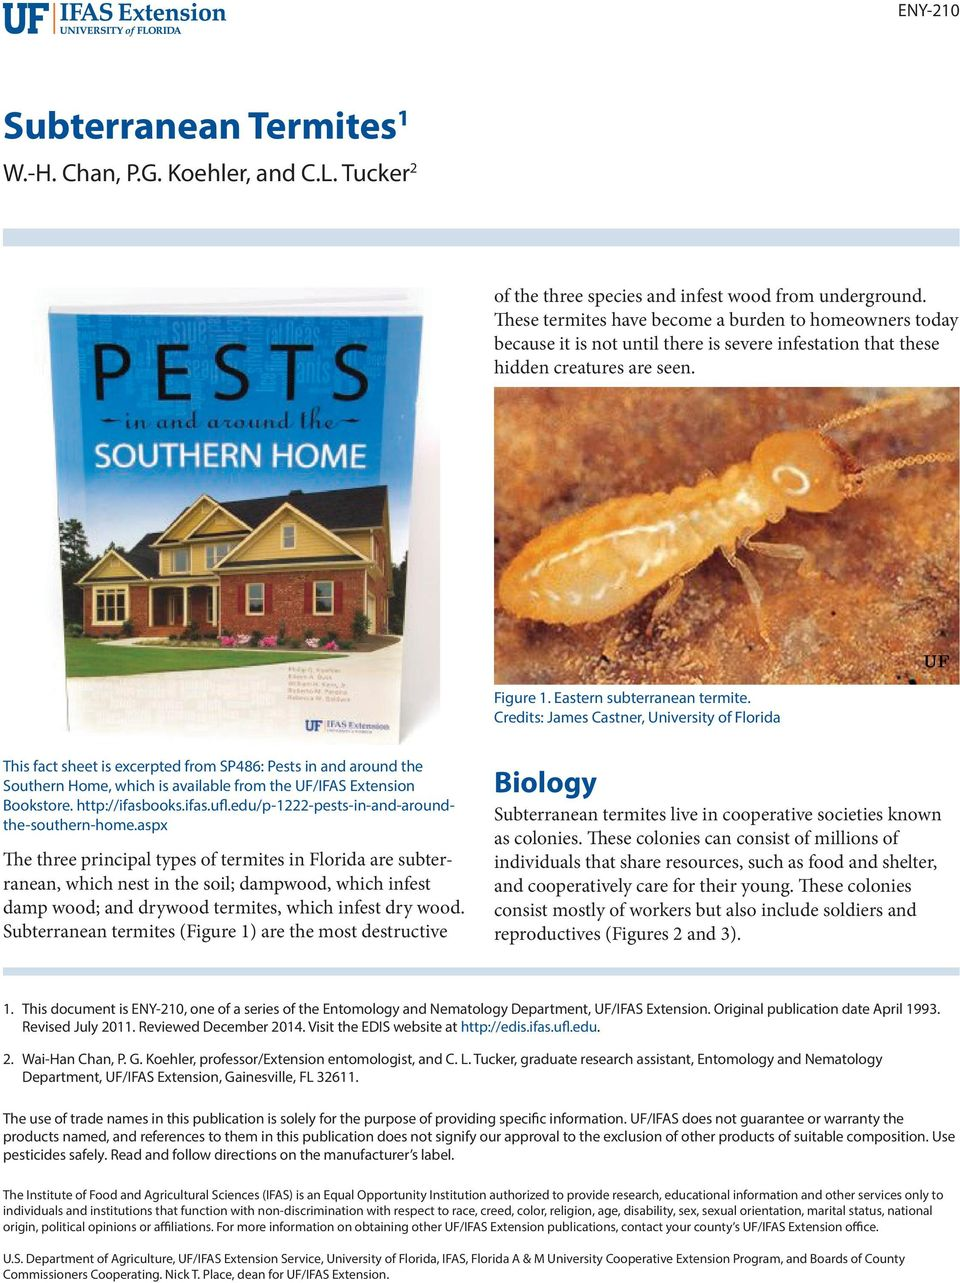 Credits: James Castner, University of Florida This fact sheet is excerpted from SP486: Pests in and around the Southern Home, which is available from the UF/IFAS Extension Bookstore. http://ifasbooks.